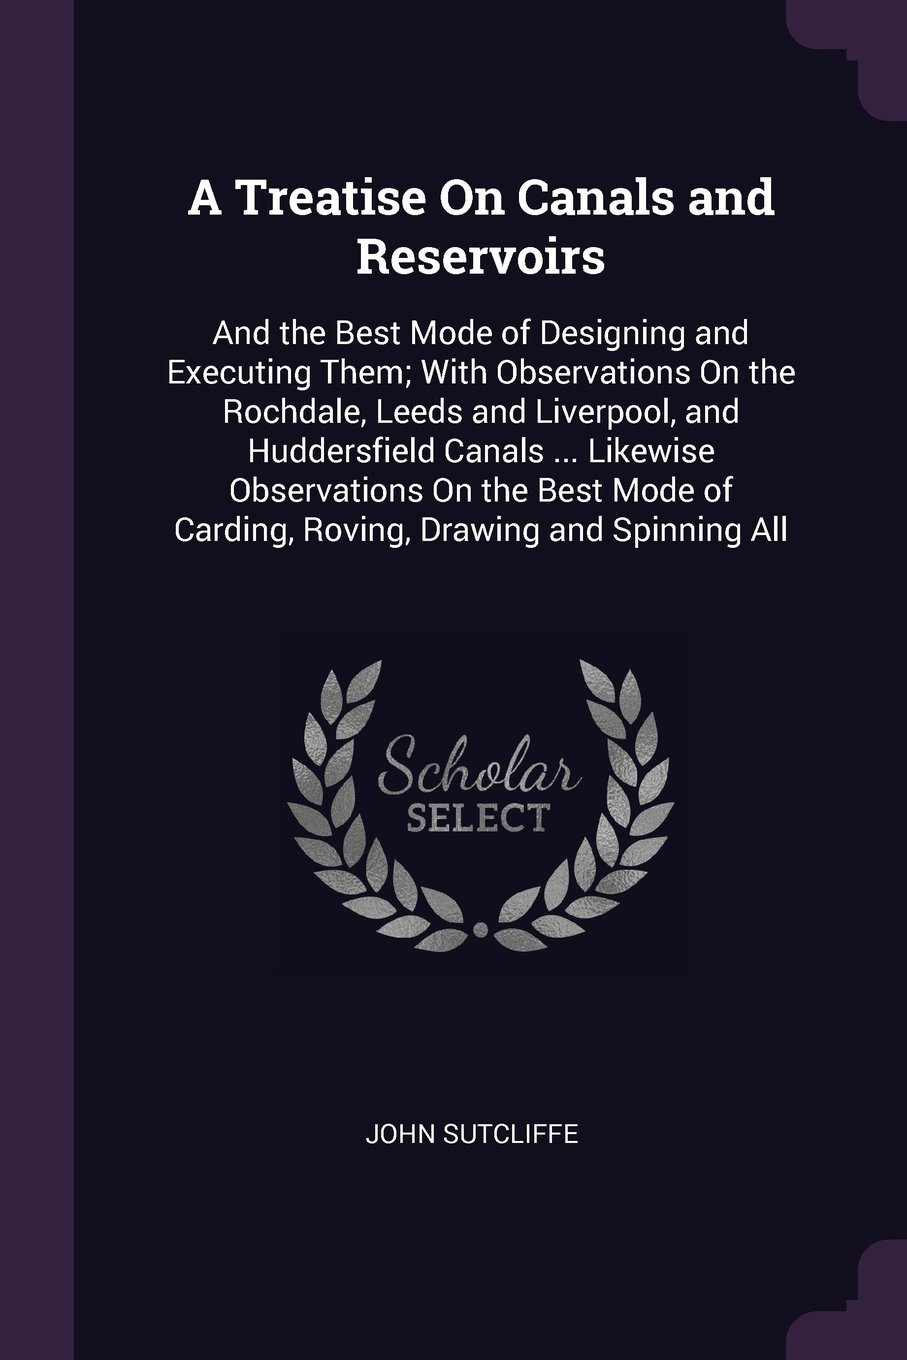 A Treatise On Canals and Reservoirs: And the Best Mode of Designing and Executing Them; With Observations On the Rochdale, Leeds and Liverpool, and ... of Carding, Roving, Drawing and Spinning All pdf